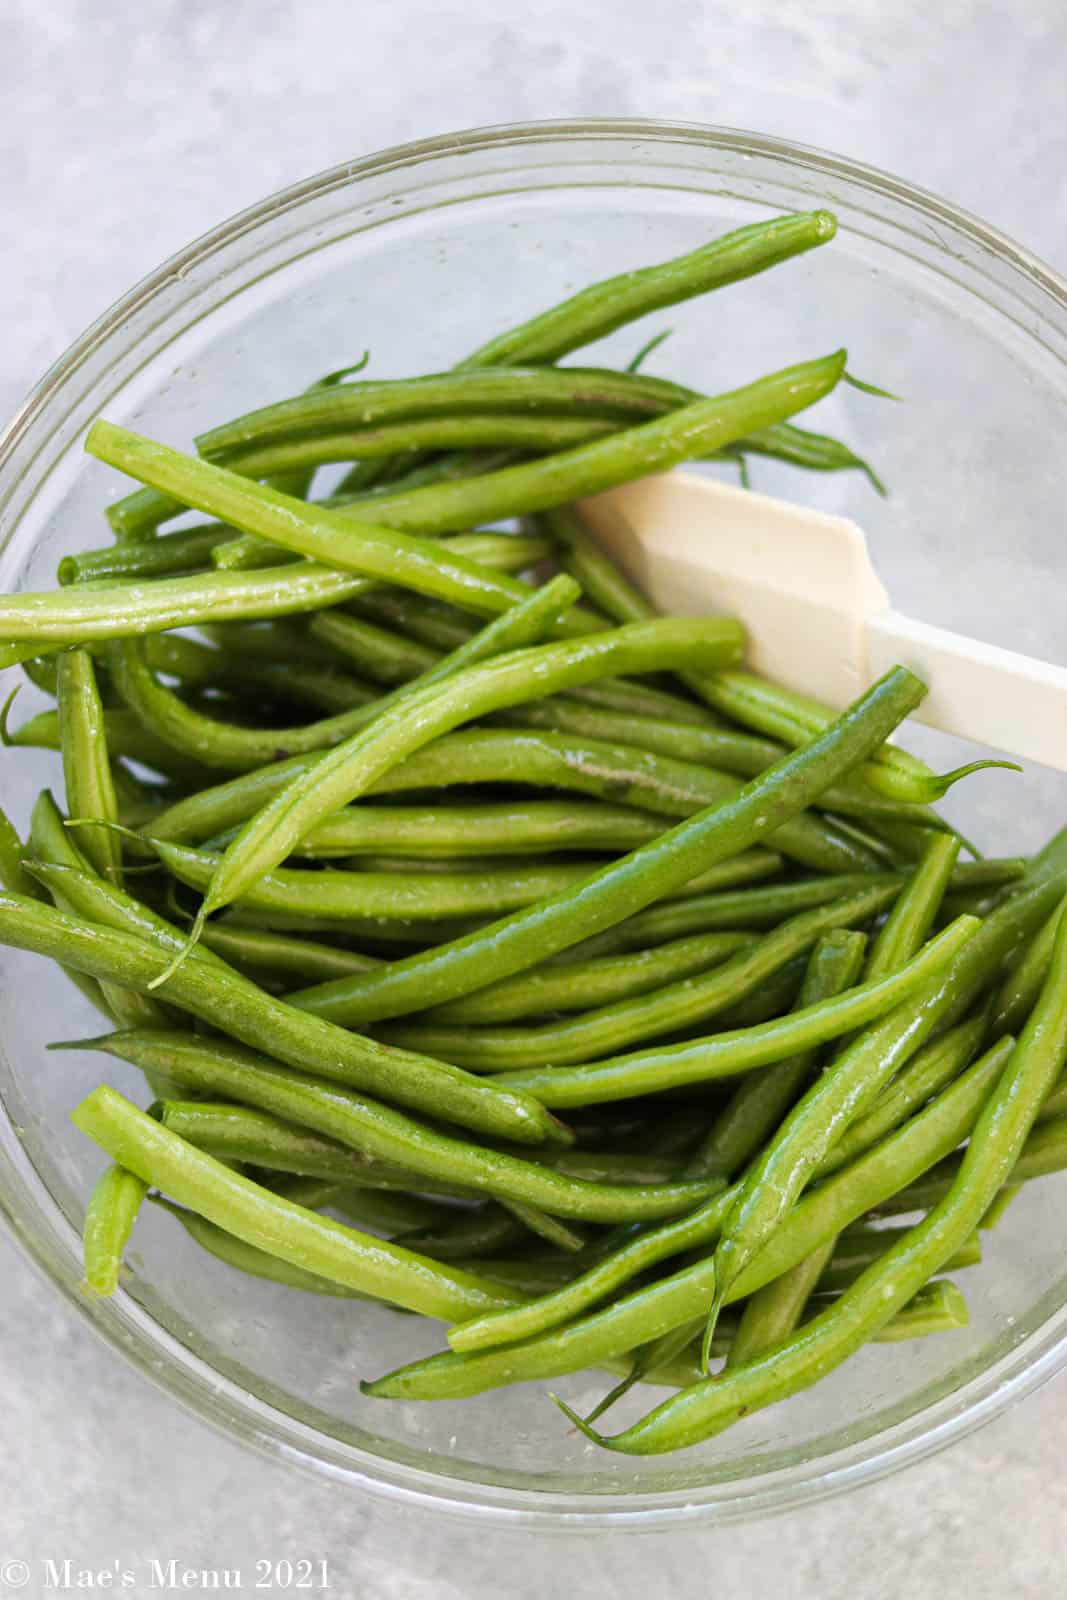 Tossing green beans with olive oil in a mixing bowl